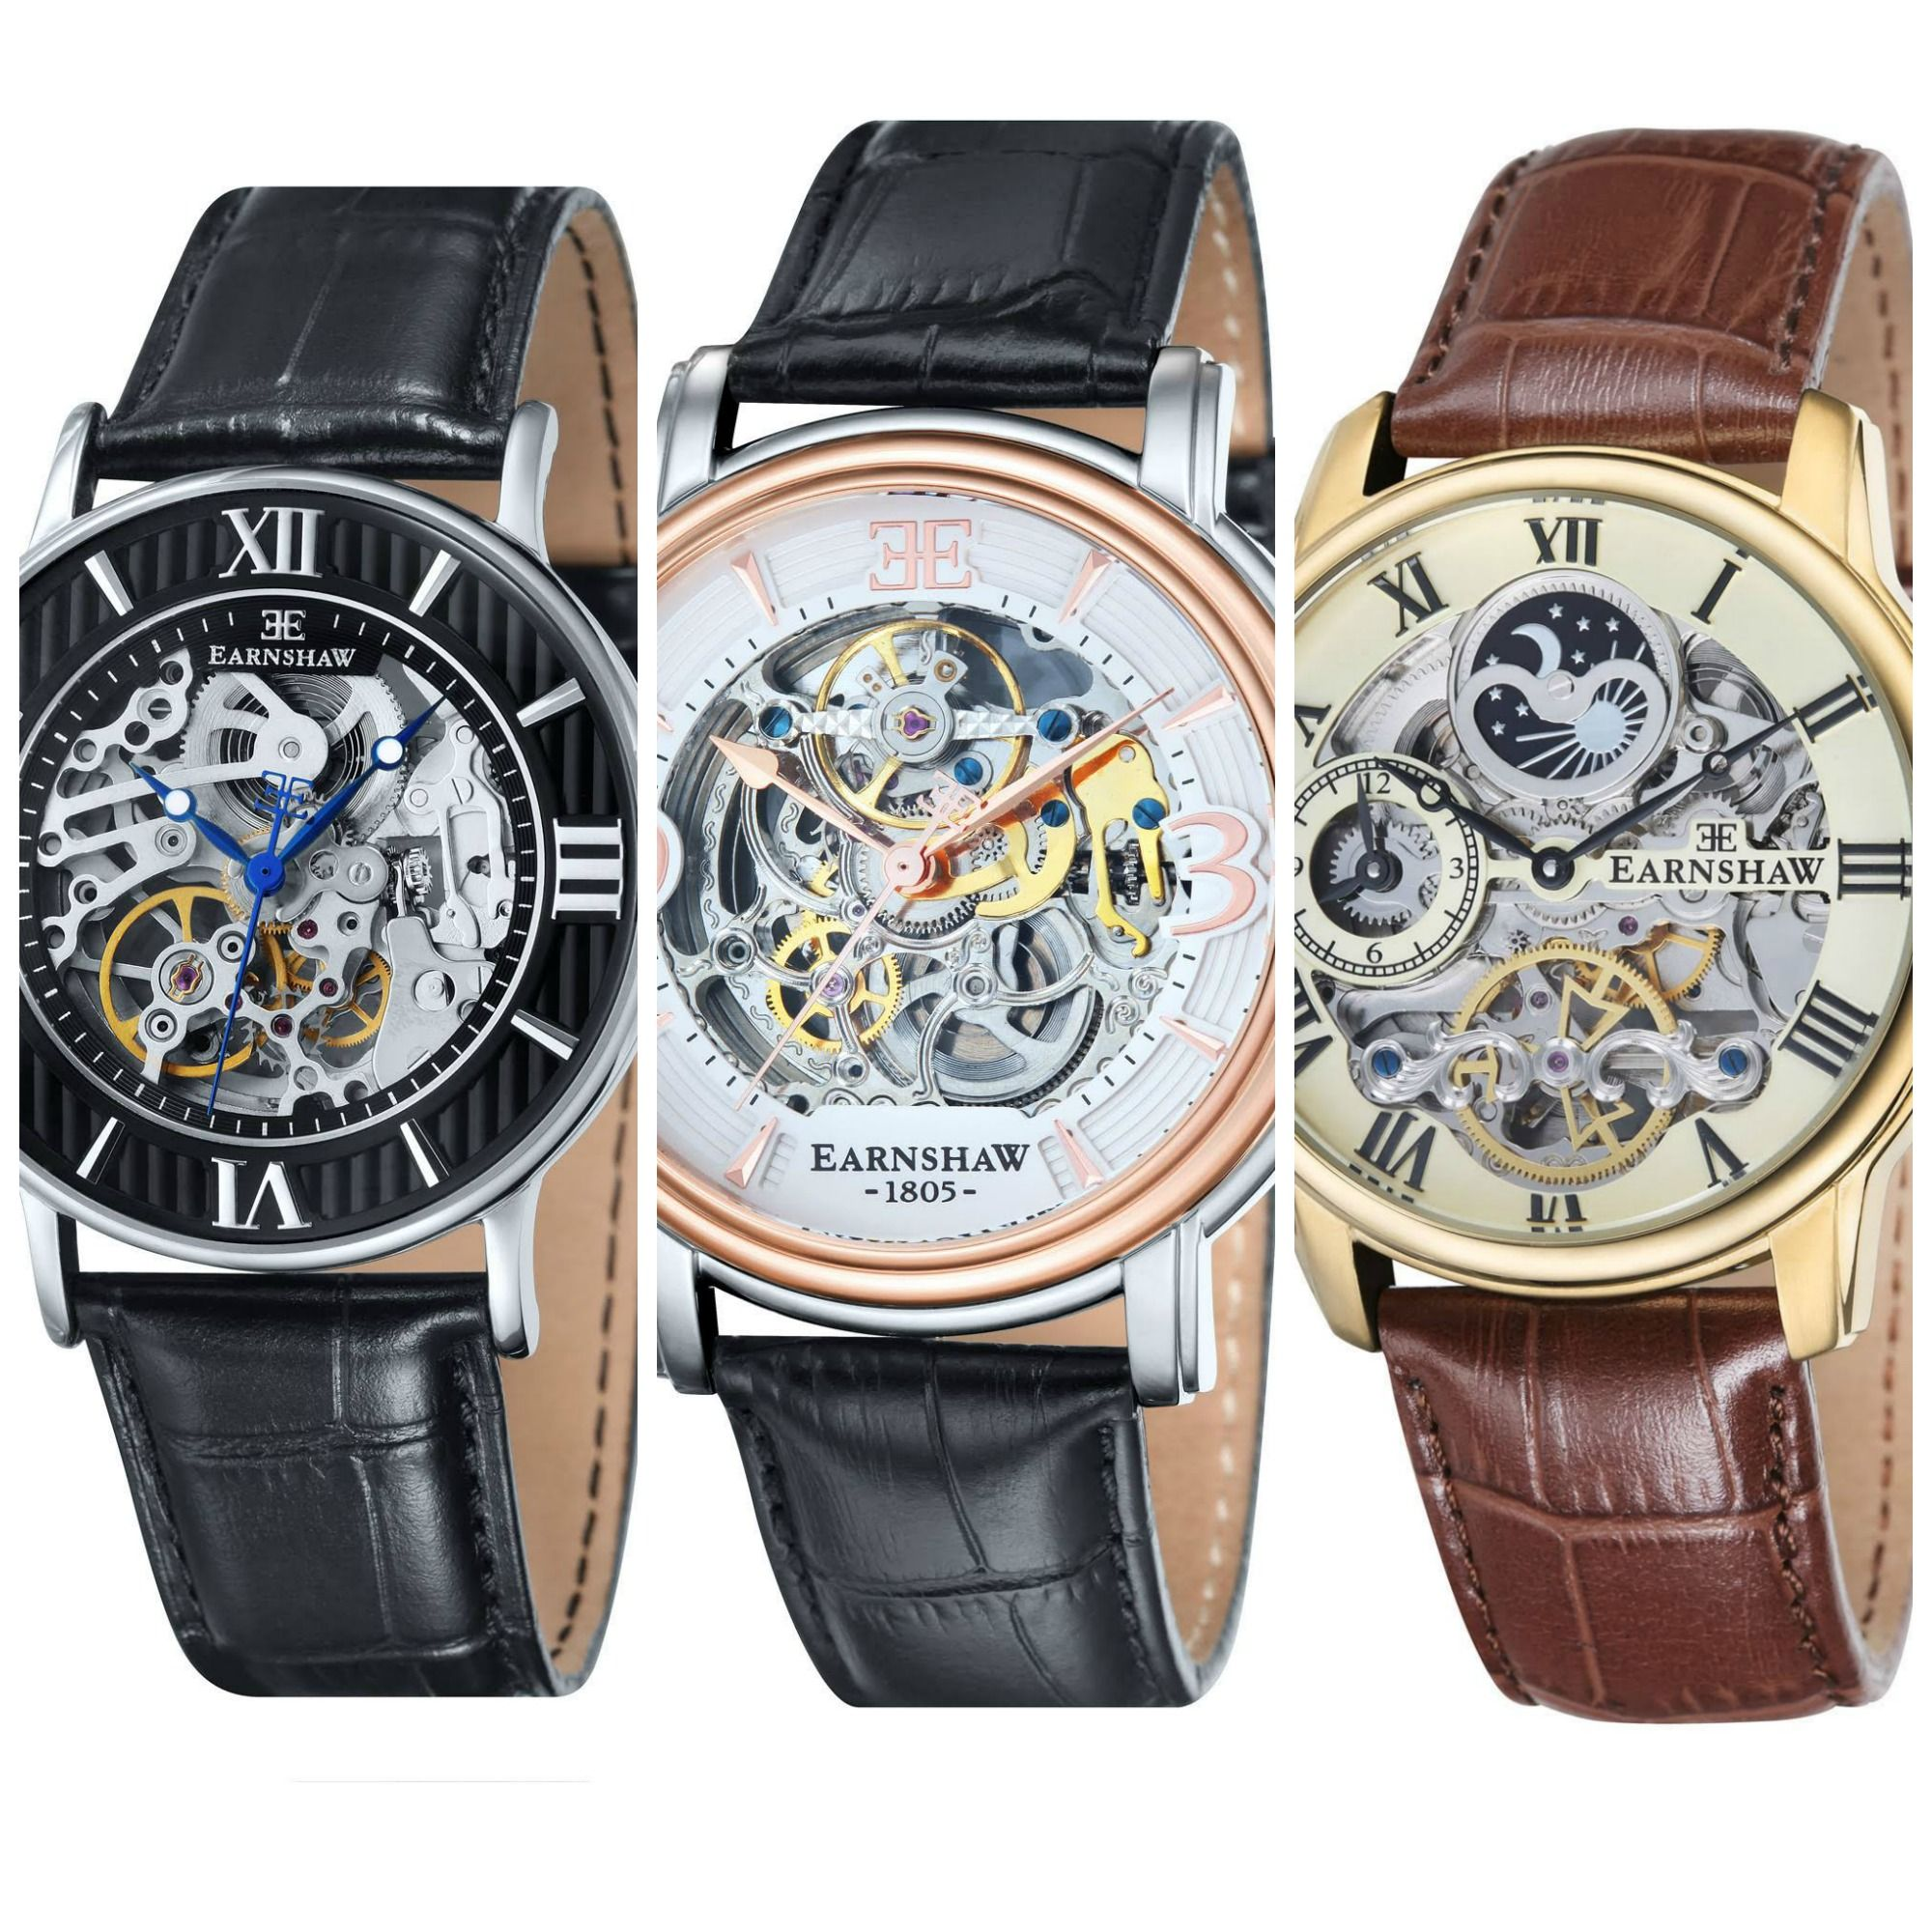 Top 8 Most Popular Thomas Earnshaw Skeleton Watches Under £100 ...